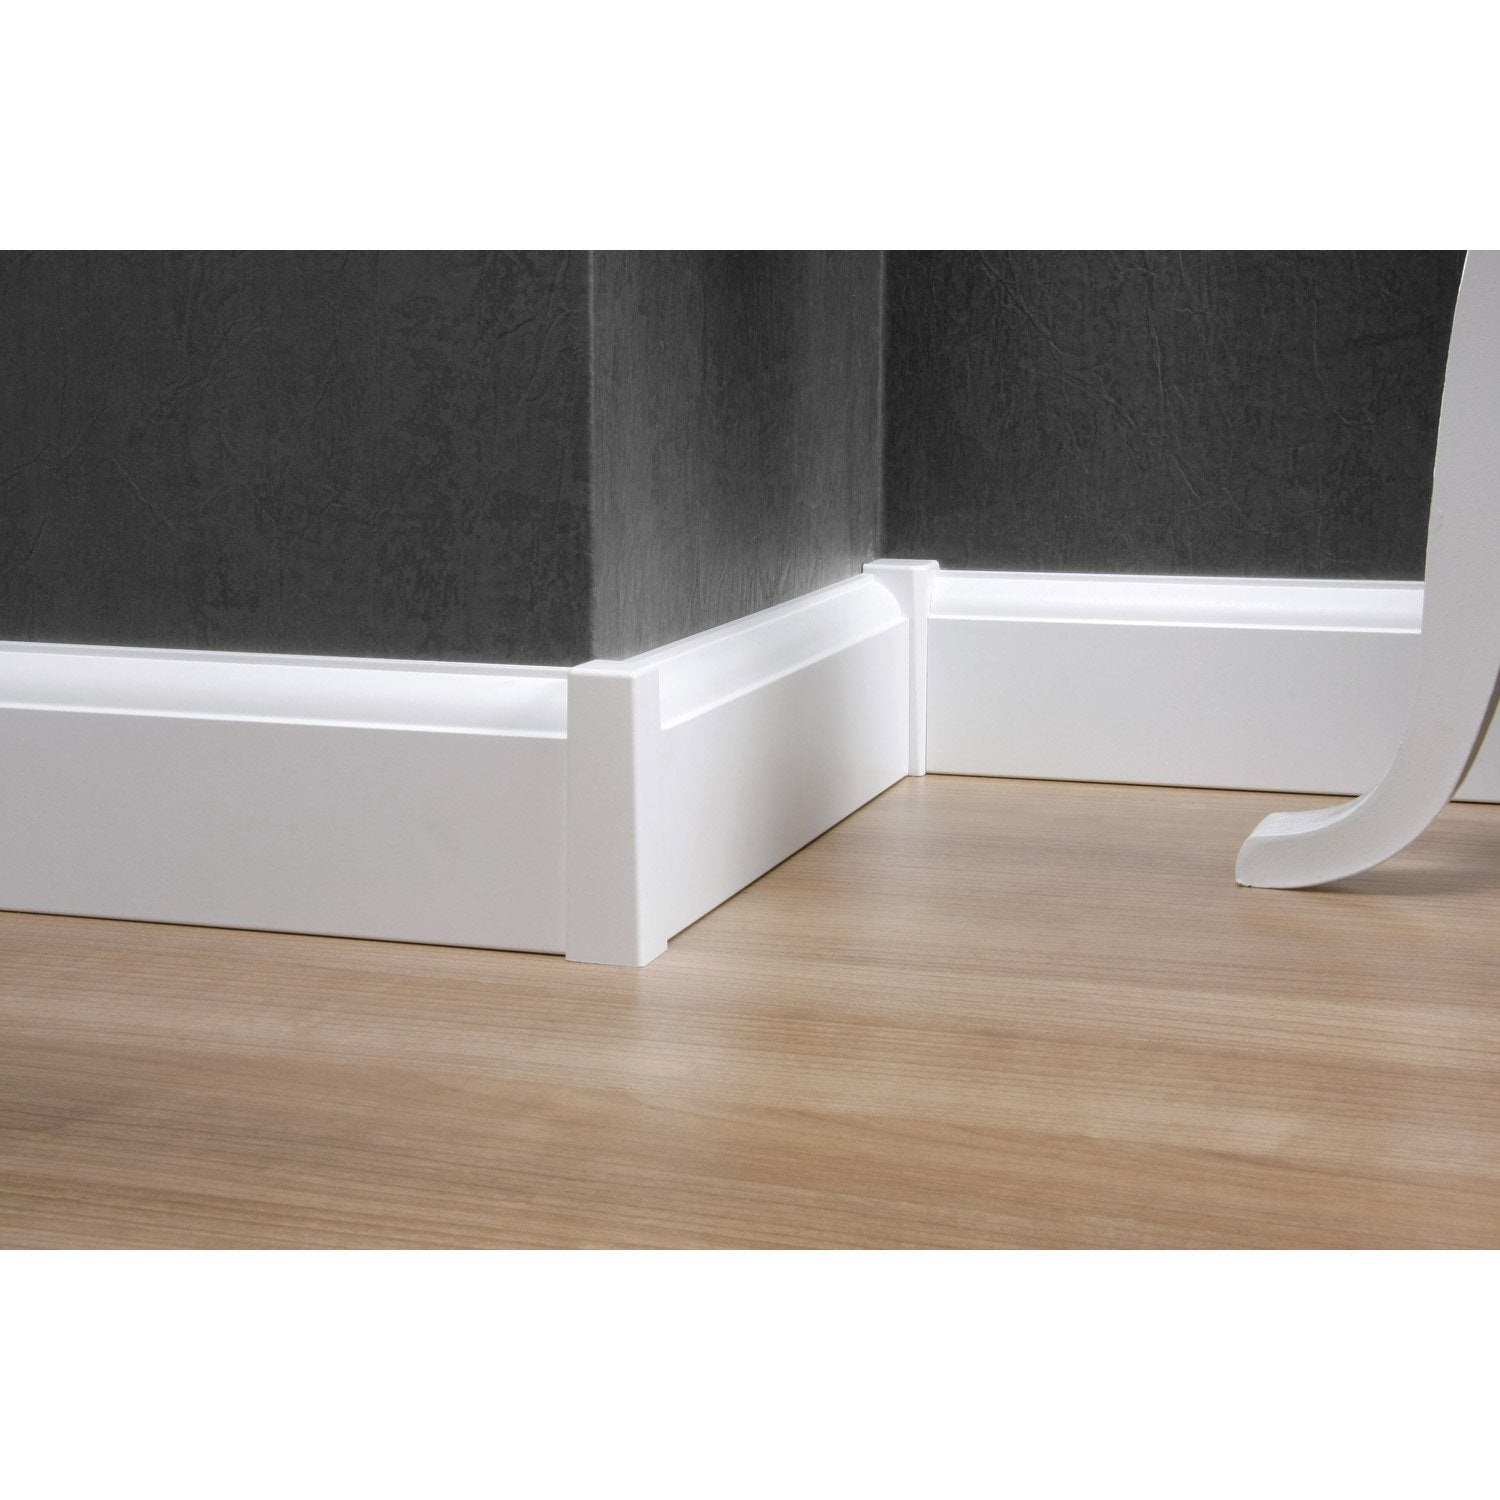 Baguette carrelage leroy merlin baguette de finition for Baguette finition carrelage sol